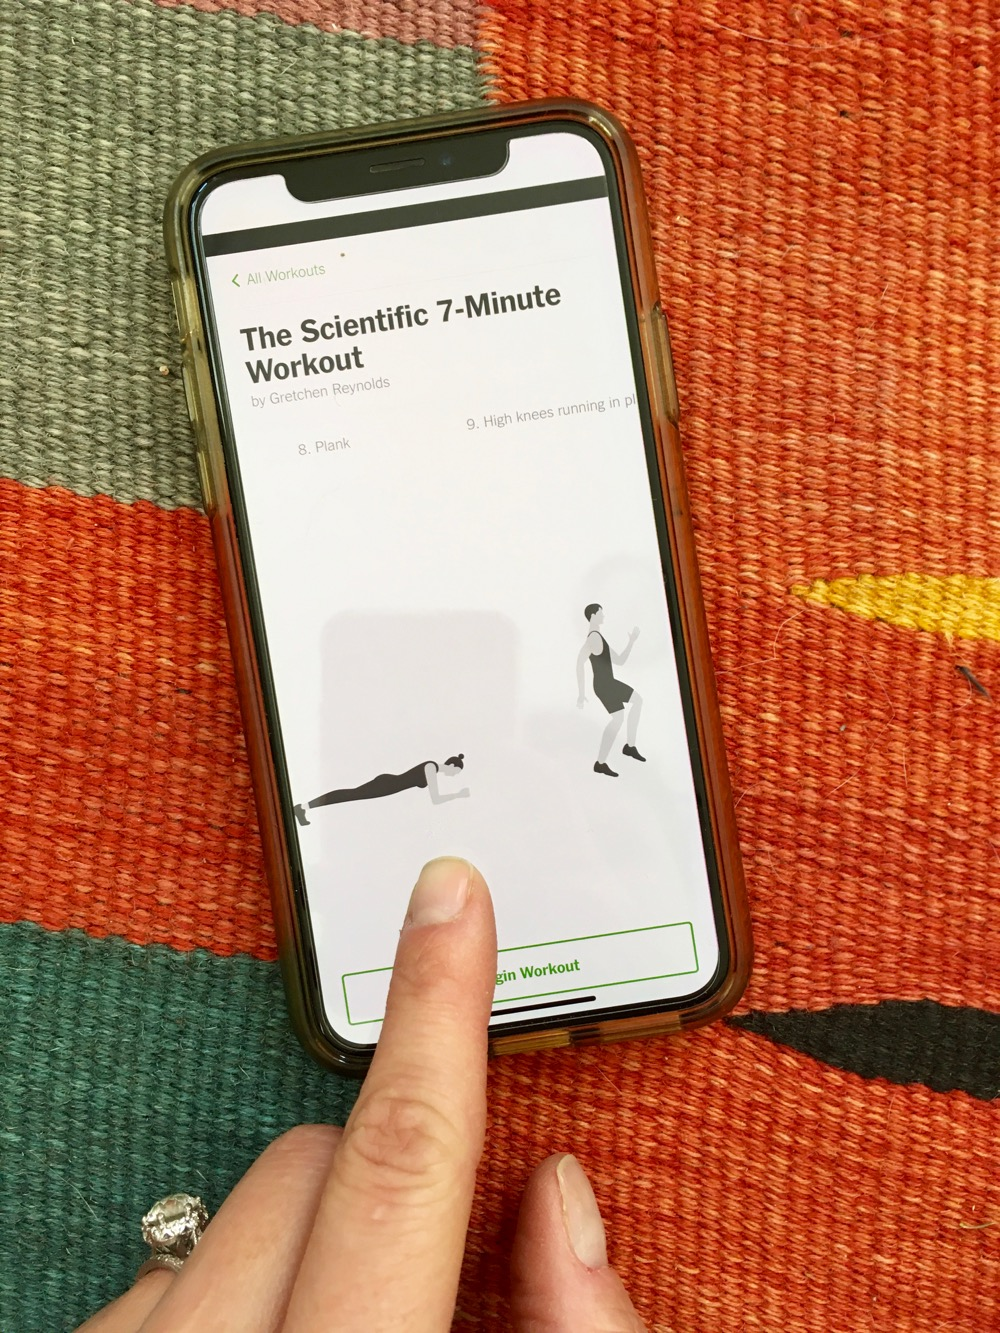 iPhone showing exercises contained in a 7-minute workout